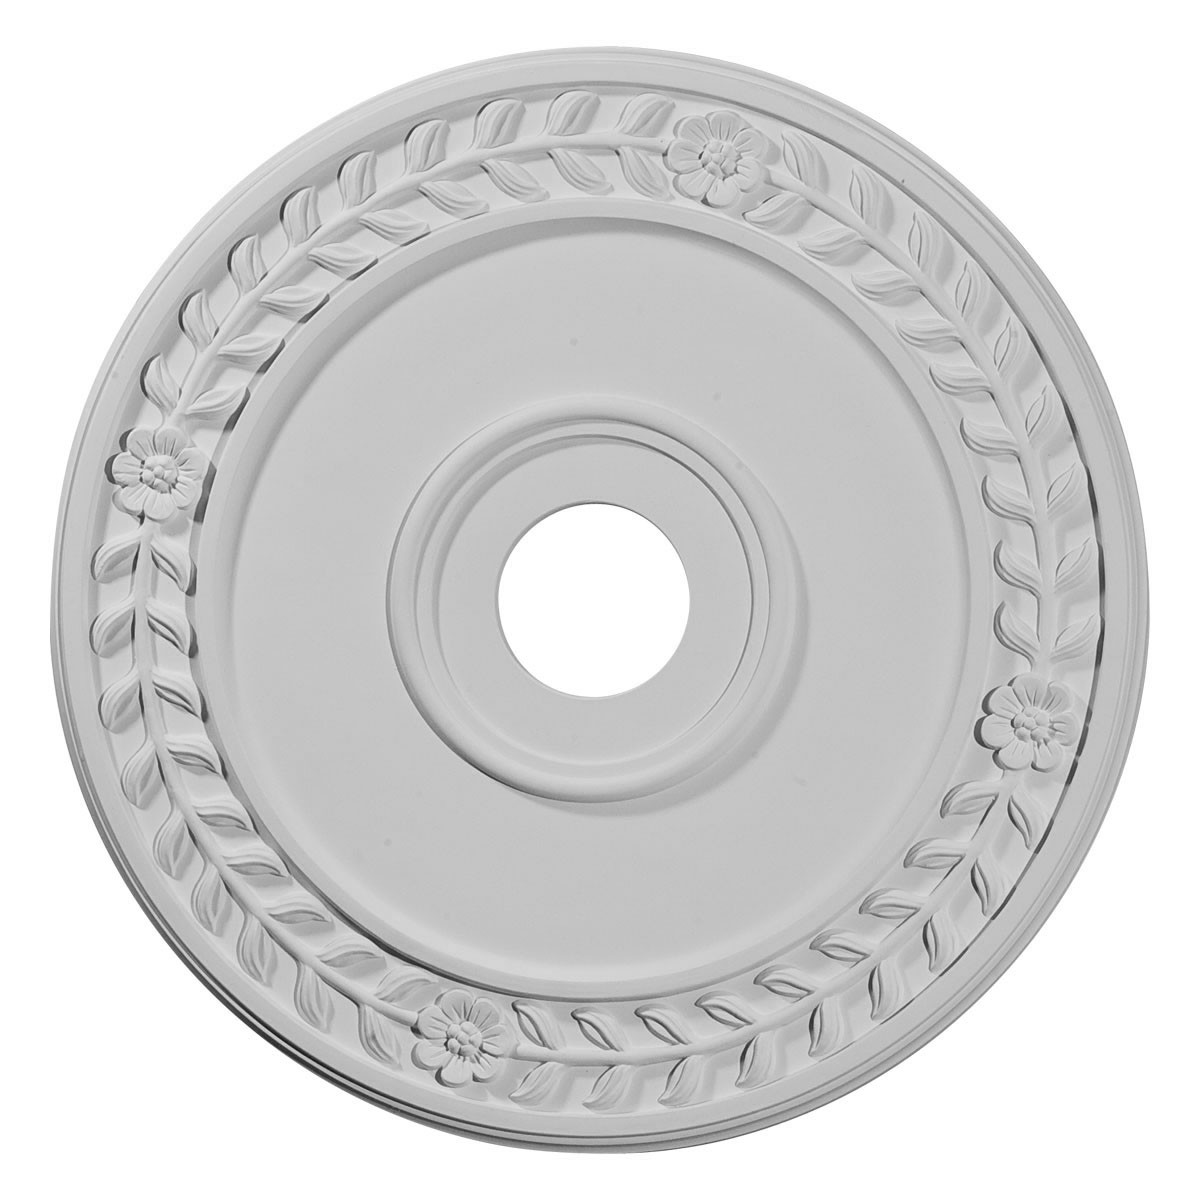 """EM-CM21WR - 21 1/8""""OD x 3 5/8""""ID x 7/8""""P Wreath Ceiling Medallion (Fits Canopies up to 6"""")"""